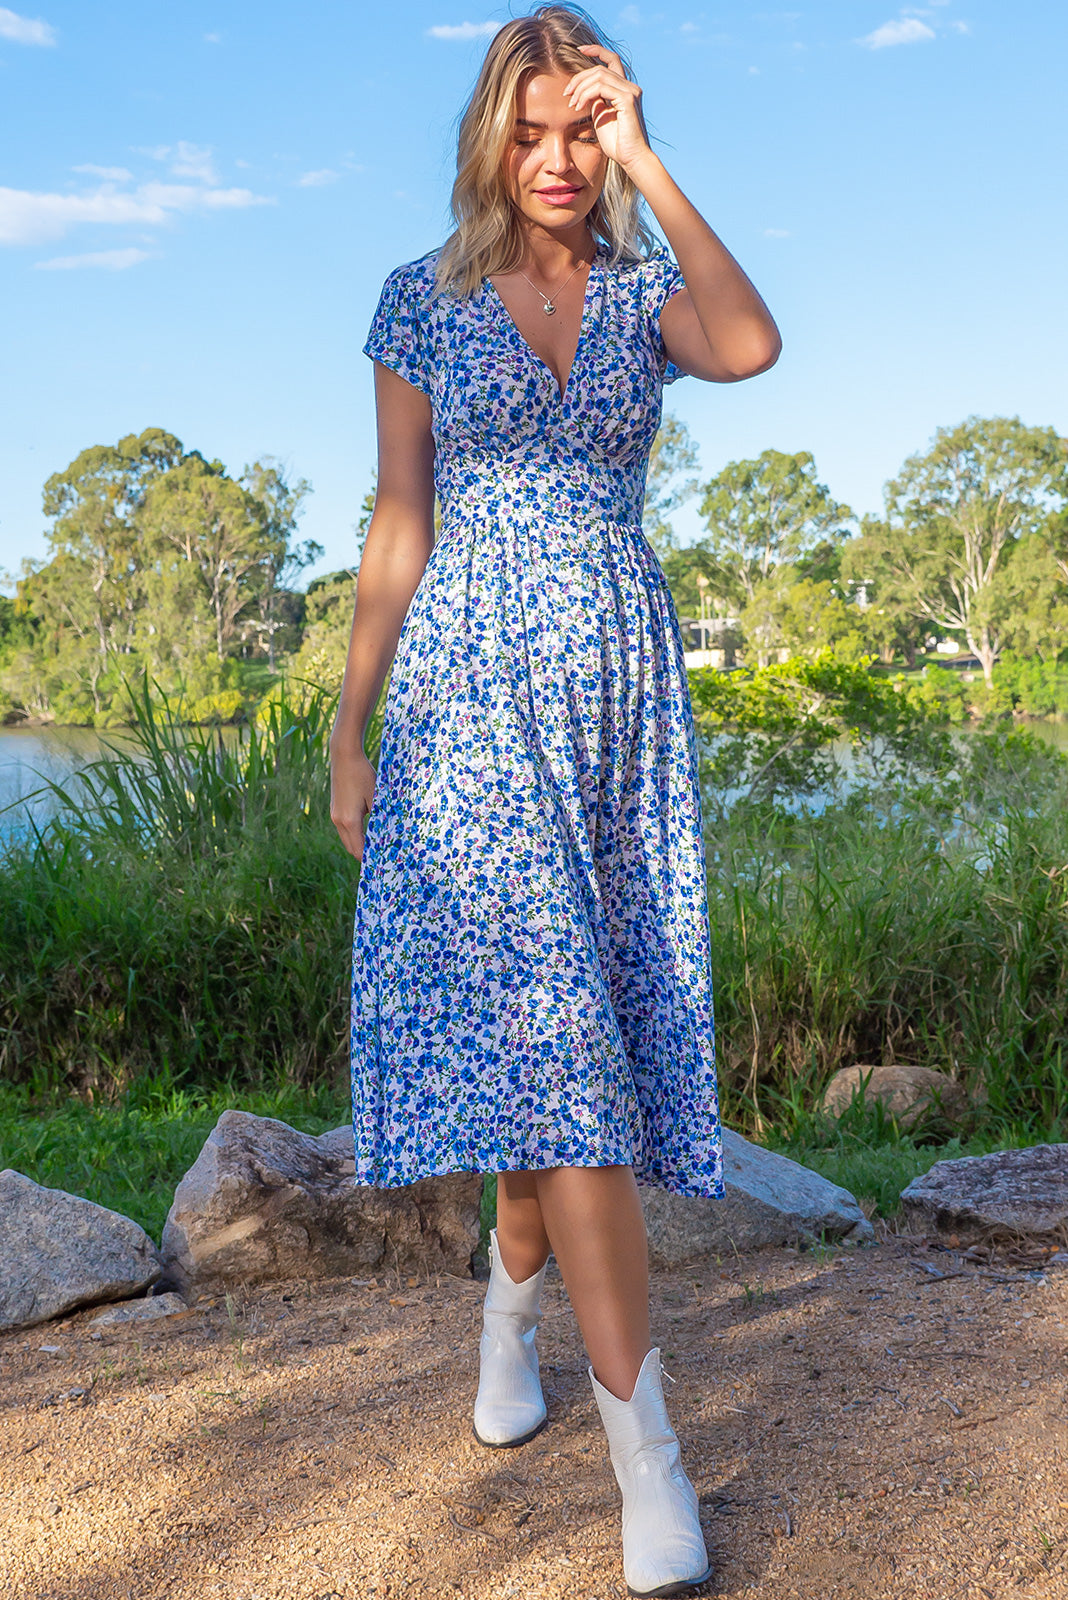 The Lizzie Delta white Dress features fitted basque waist with gathered bust, waist features elastic shirring at back, petite side pockets and 100% rayon in white base with gorgeous blue floral print.